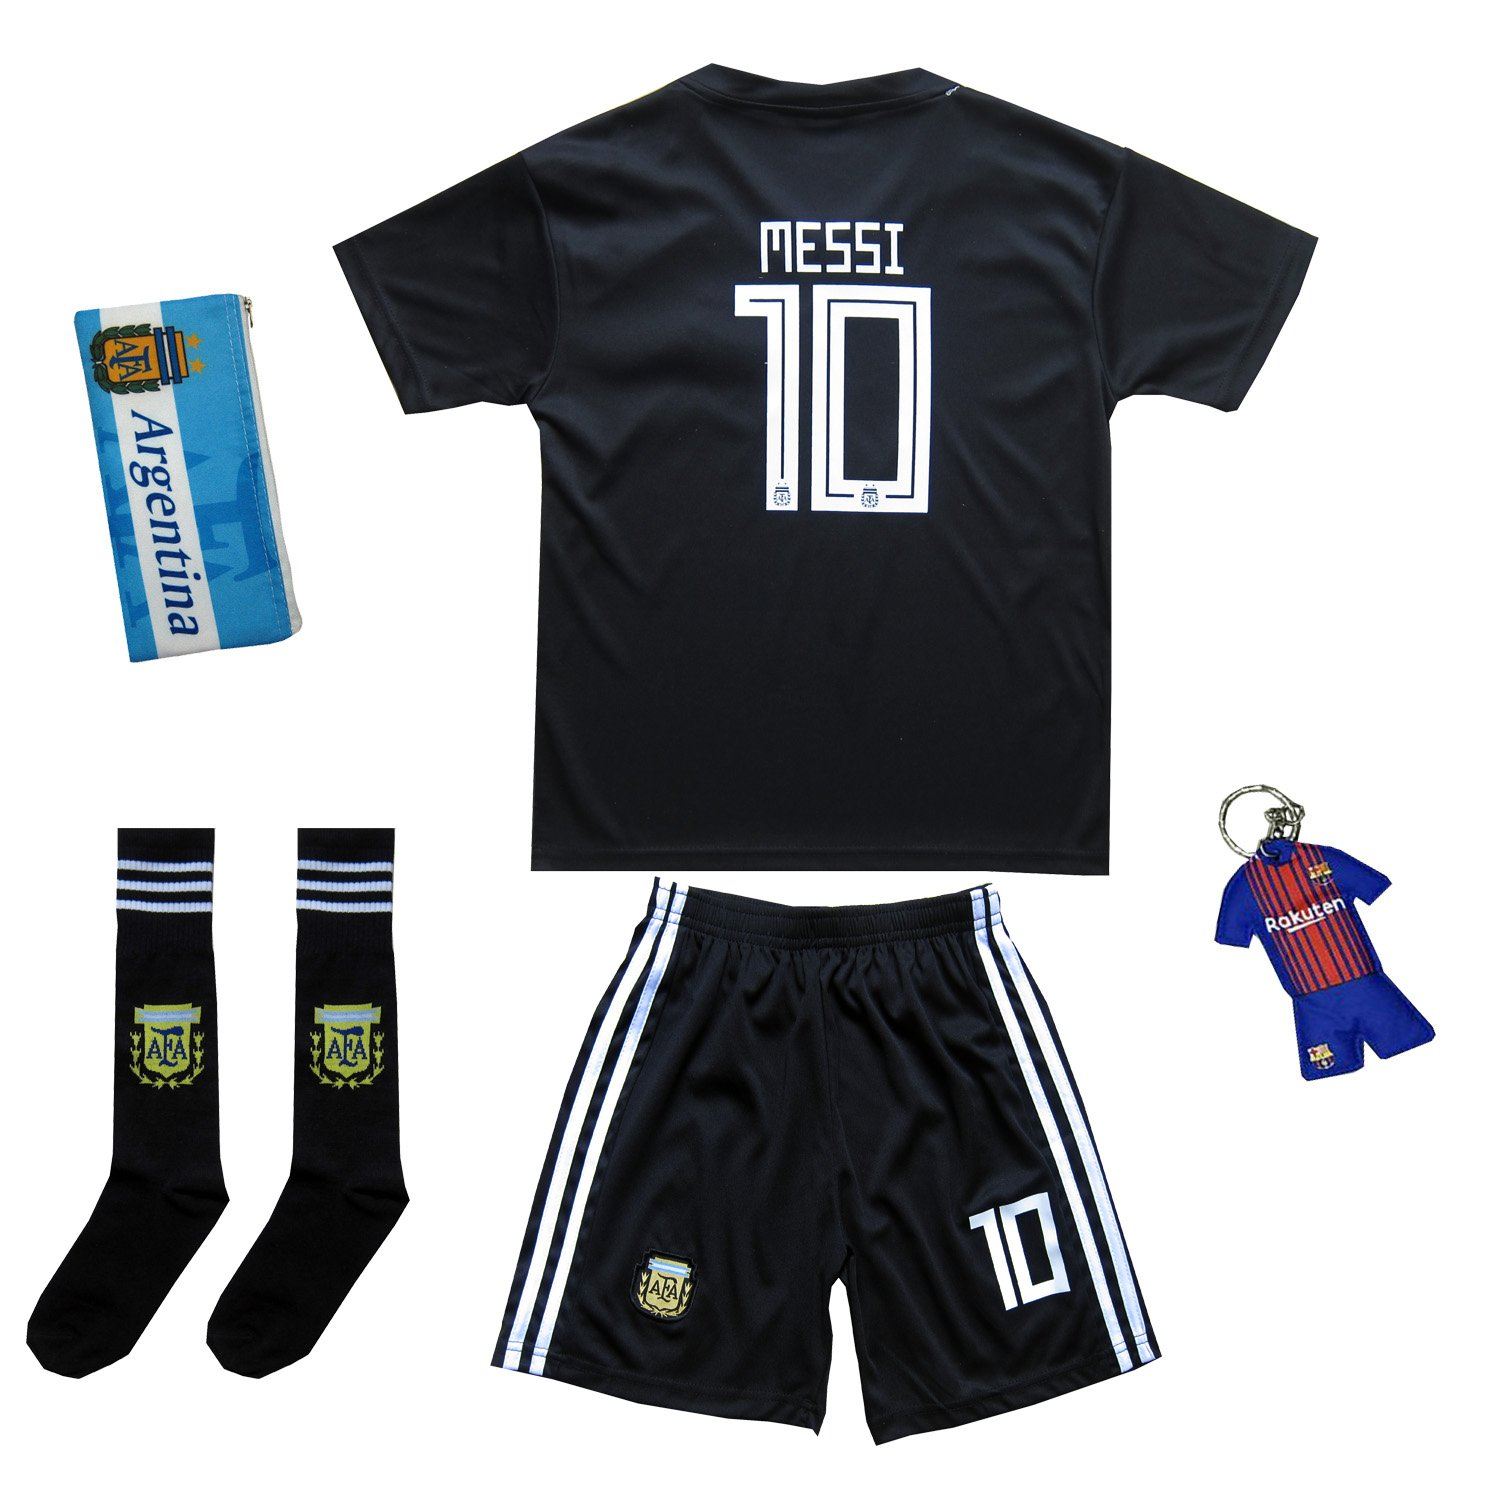 3922136b9e1 Amazon.com : KID BOX 2018 Argentina Lionel Messi #10 Away Soccer Kids Jersey  & Short Set Youth Sizes : Sports & Outdoors